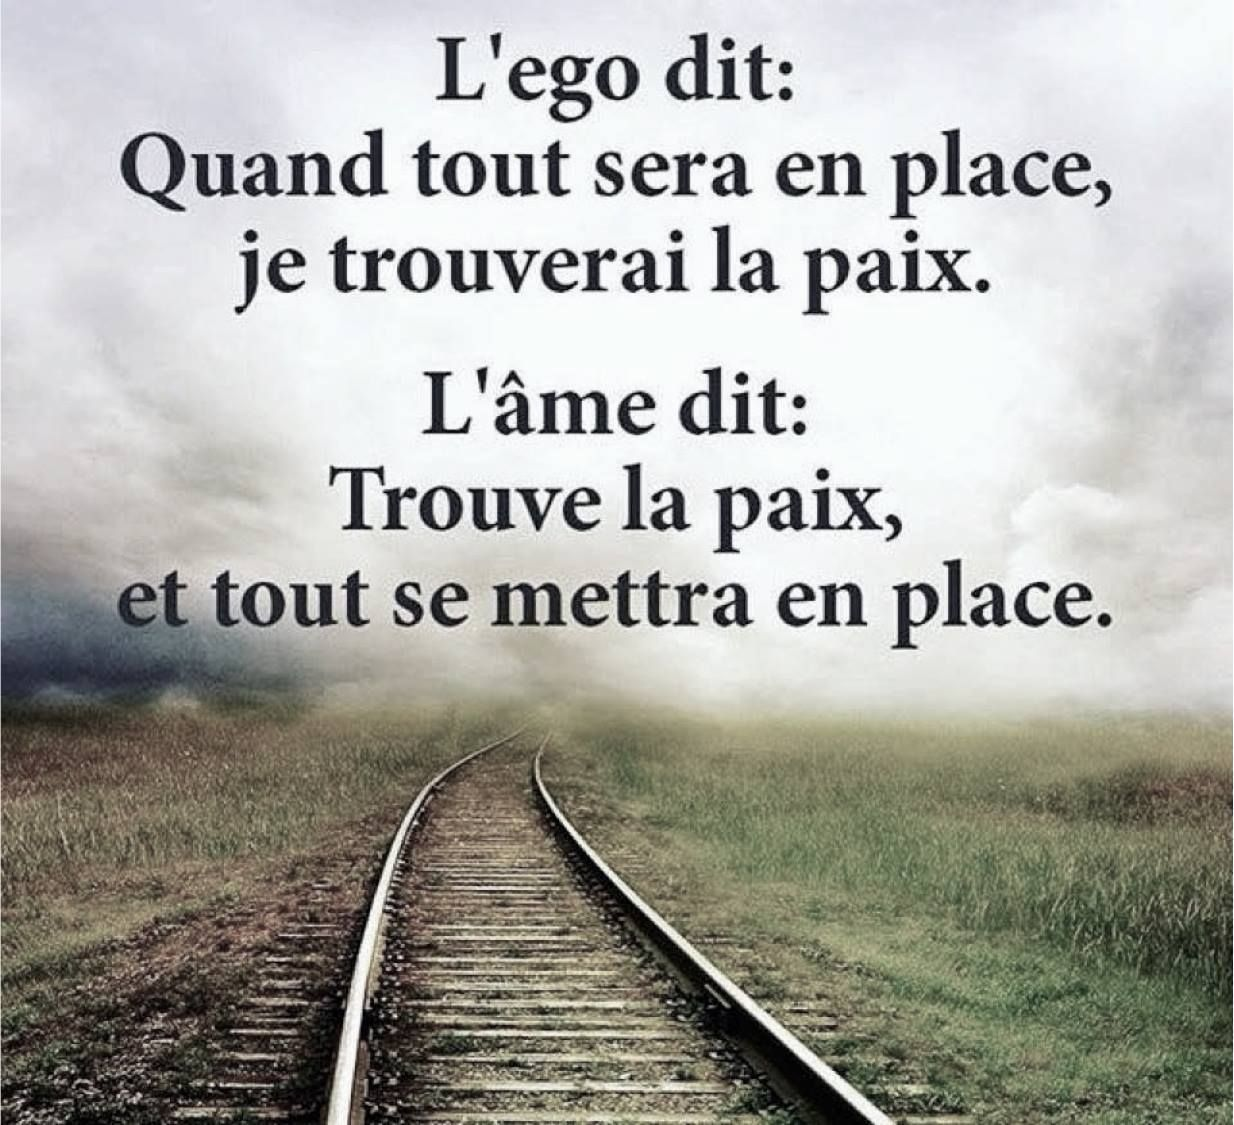 French Quotes About Friendship Pinjessica Bellavance On Quotes  Pinterest